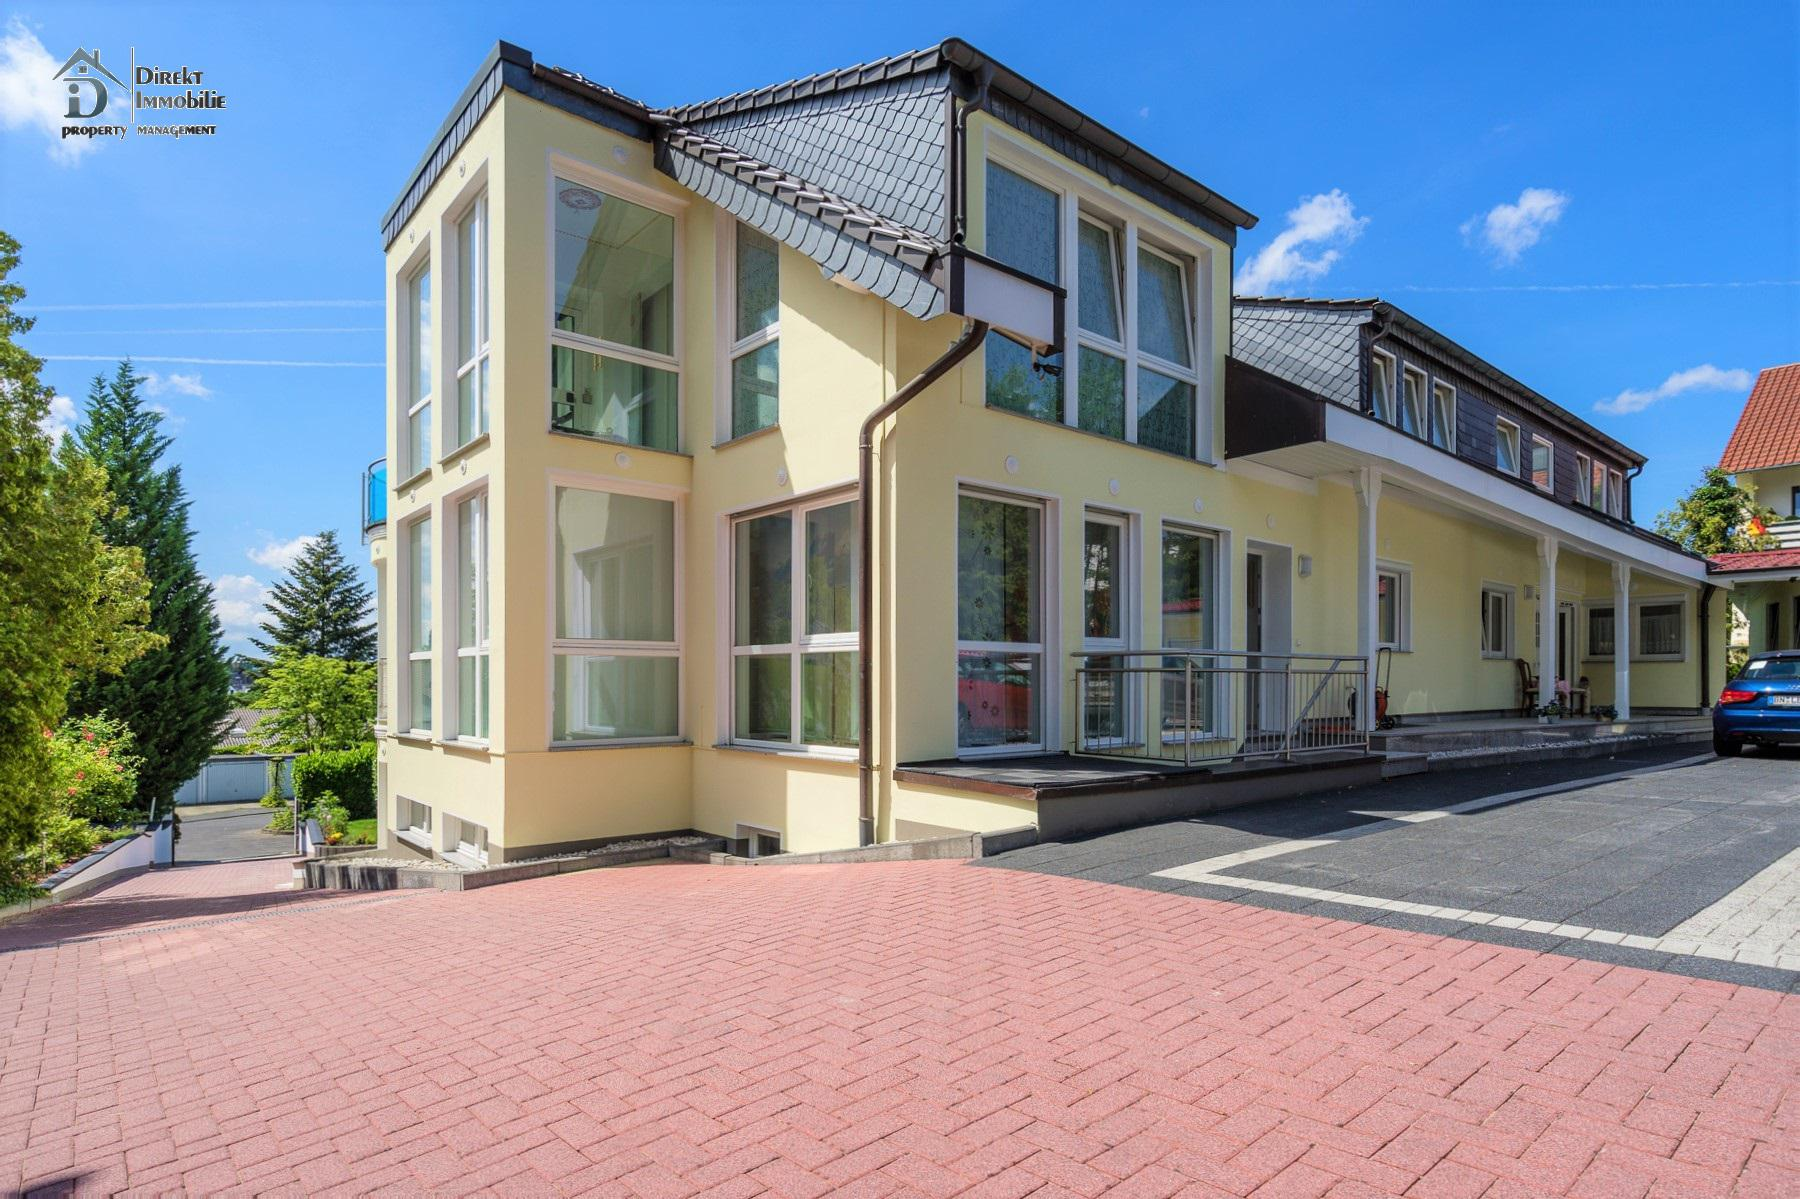 Bilder Direkt-Immobilie - Property Management - Bonn